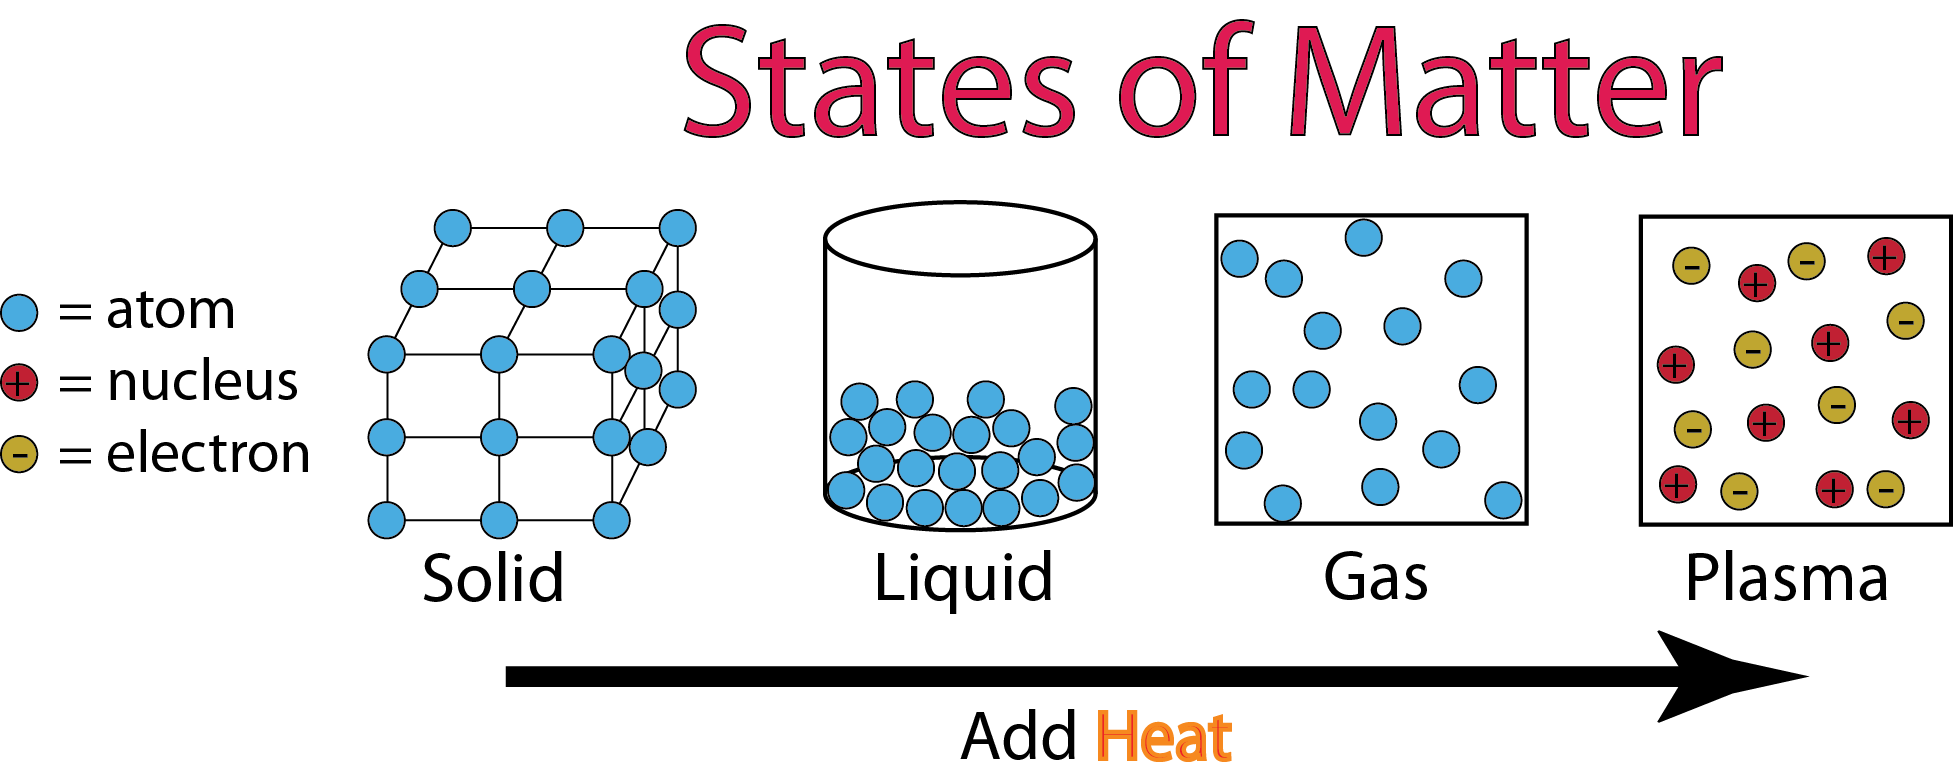 States of matter | Amazing Science Wiki | Fandom powered by Wikia